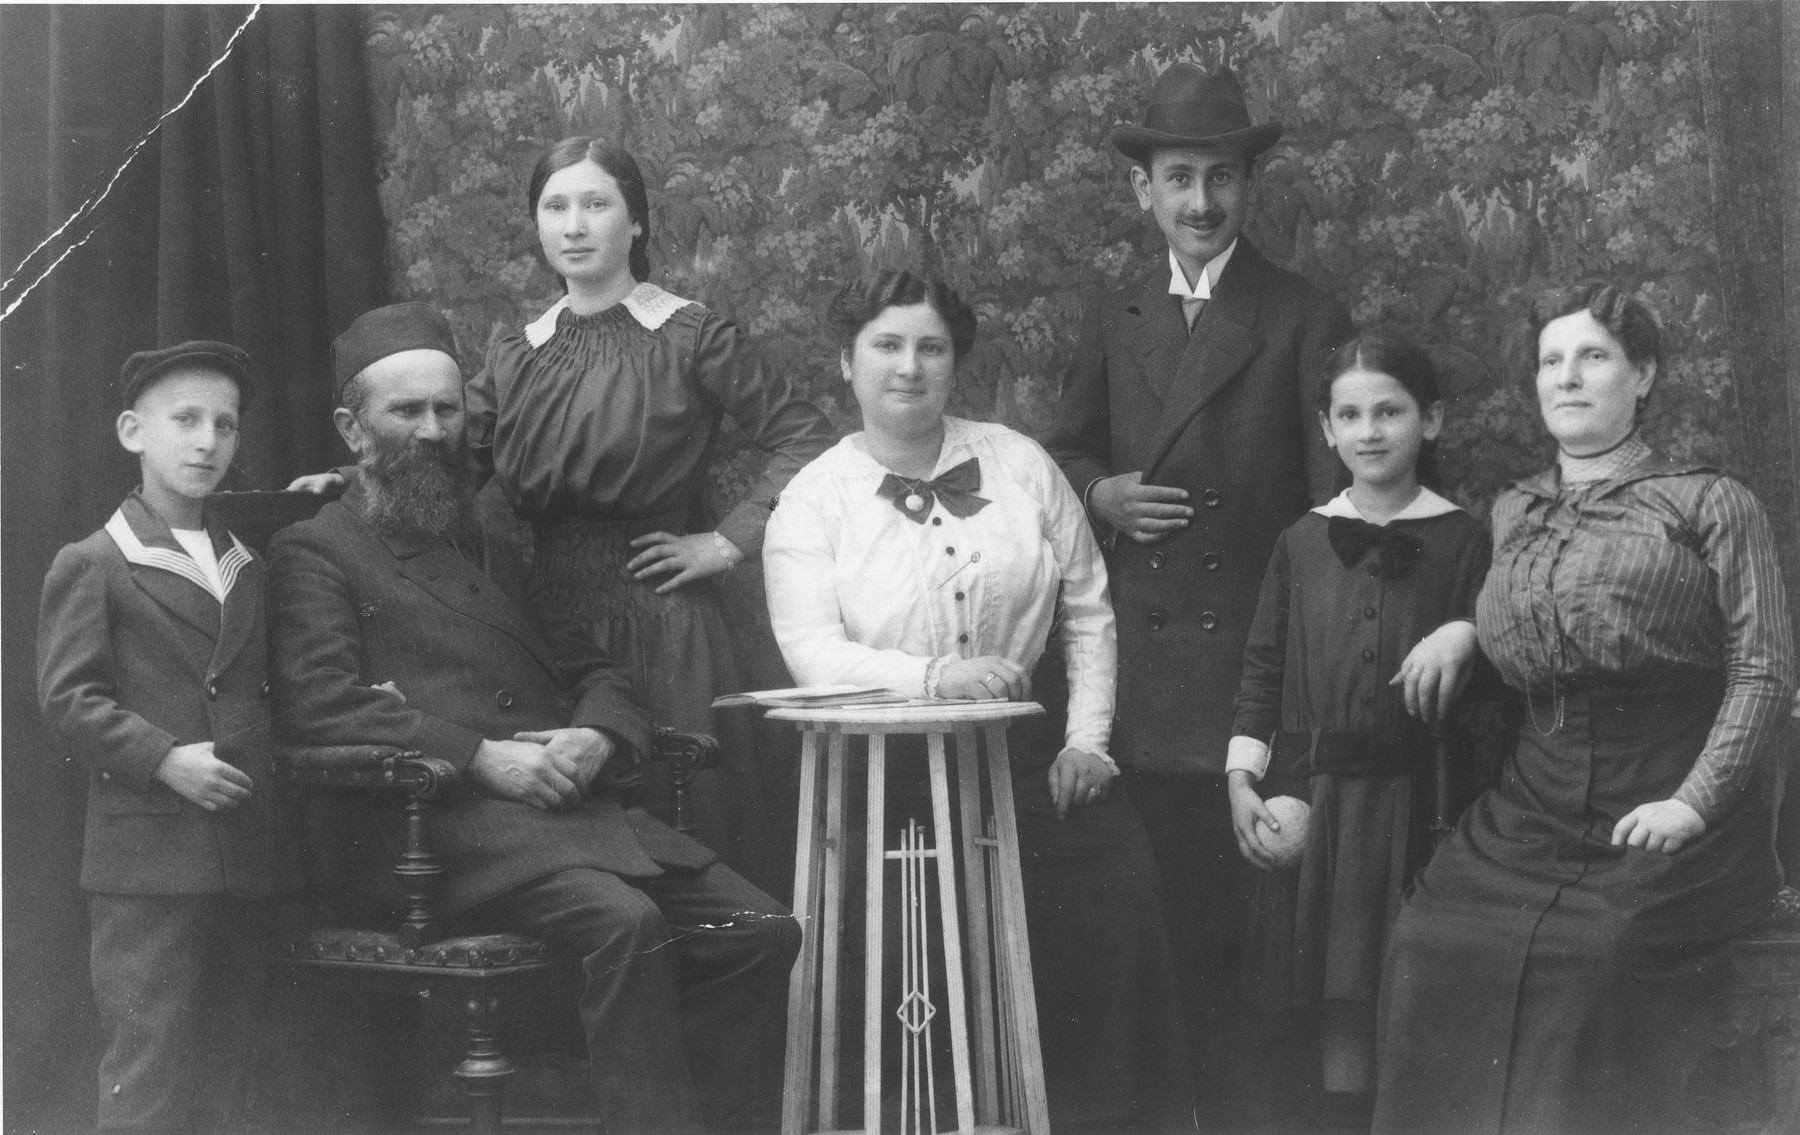 Portrait of Zimmerlinsky family in Nuremberg.  The donor's mother, Rachel Zimmerlinsky, is pictured third from the left.